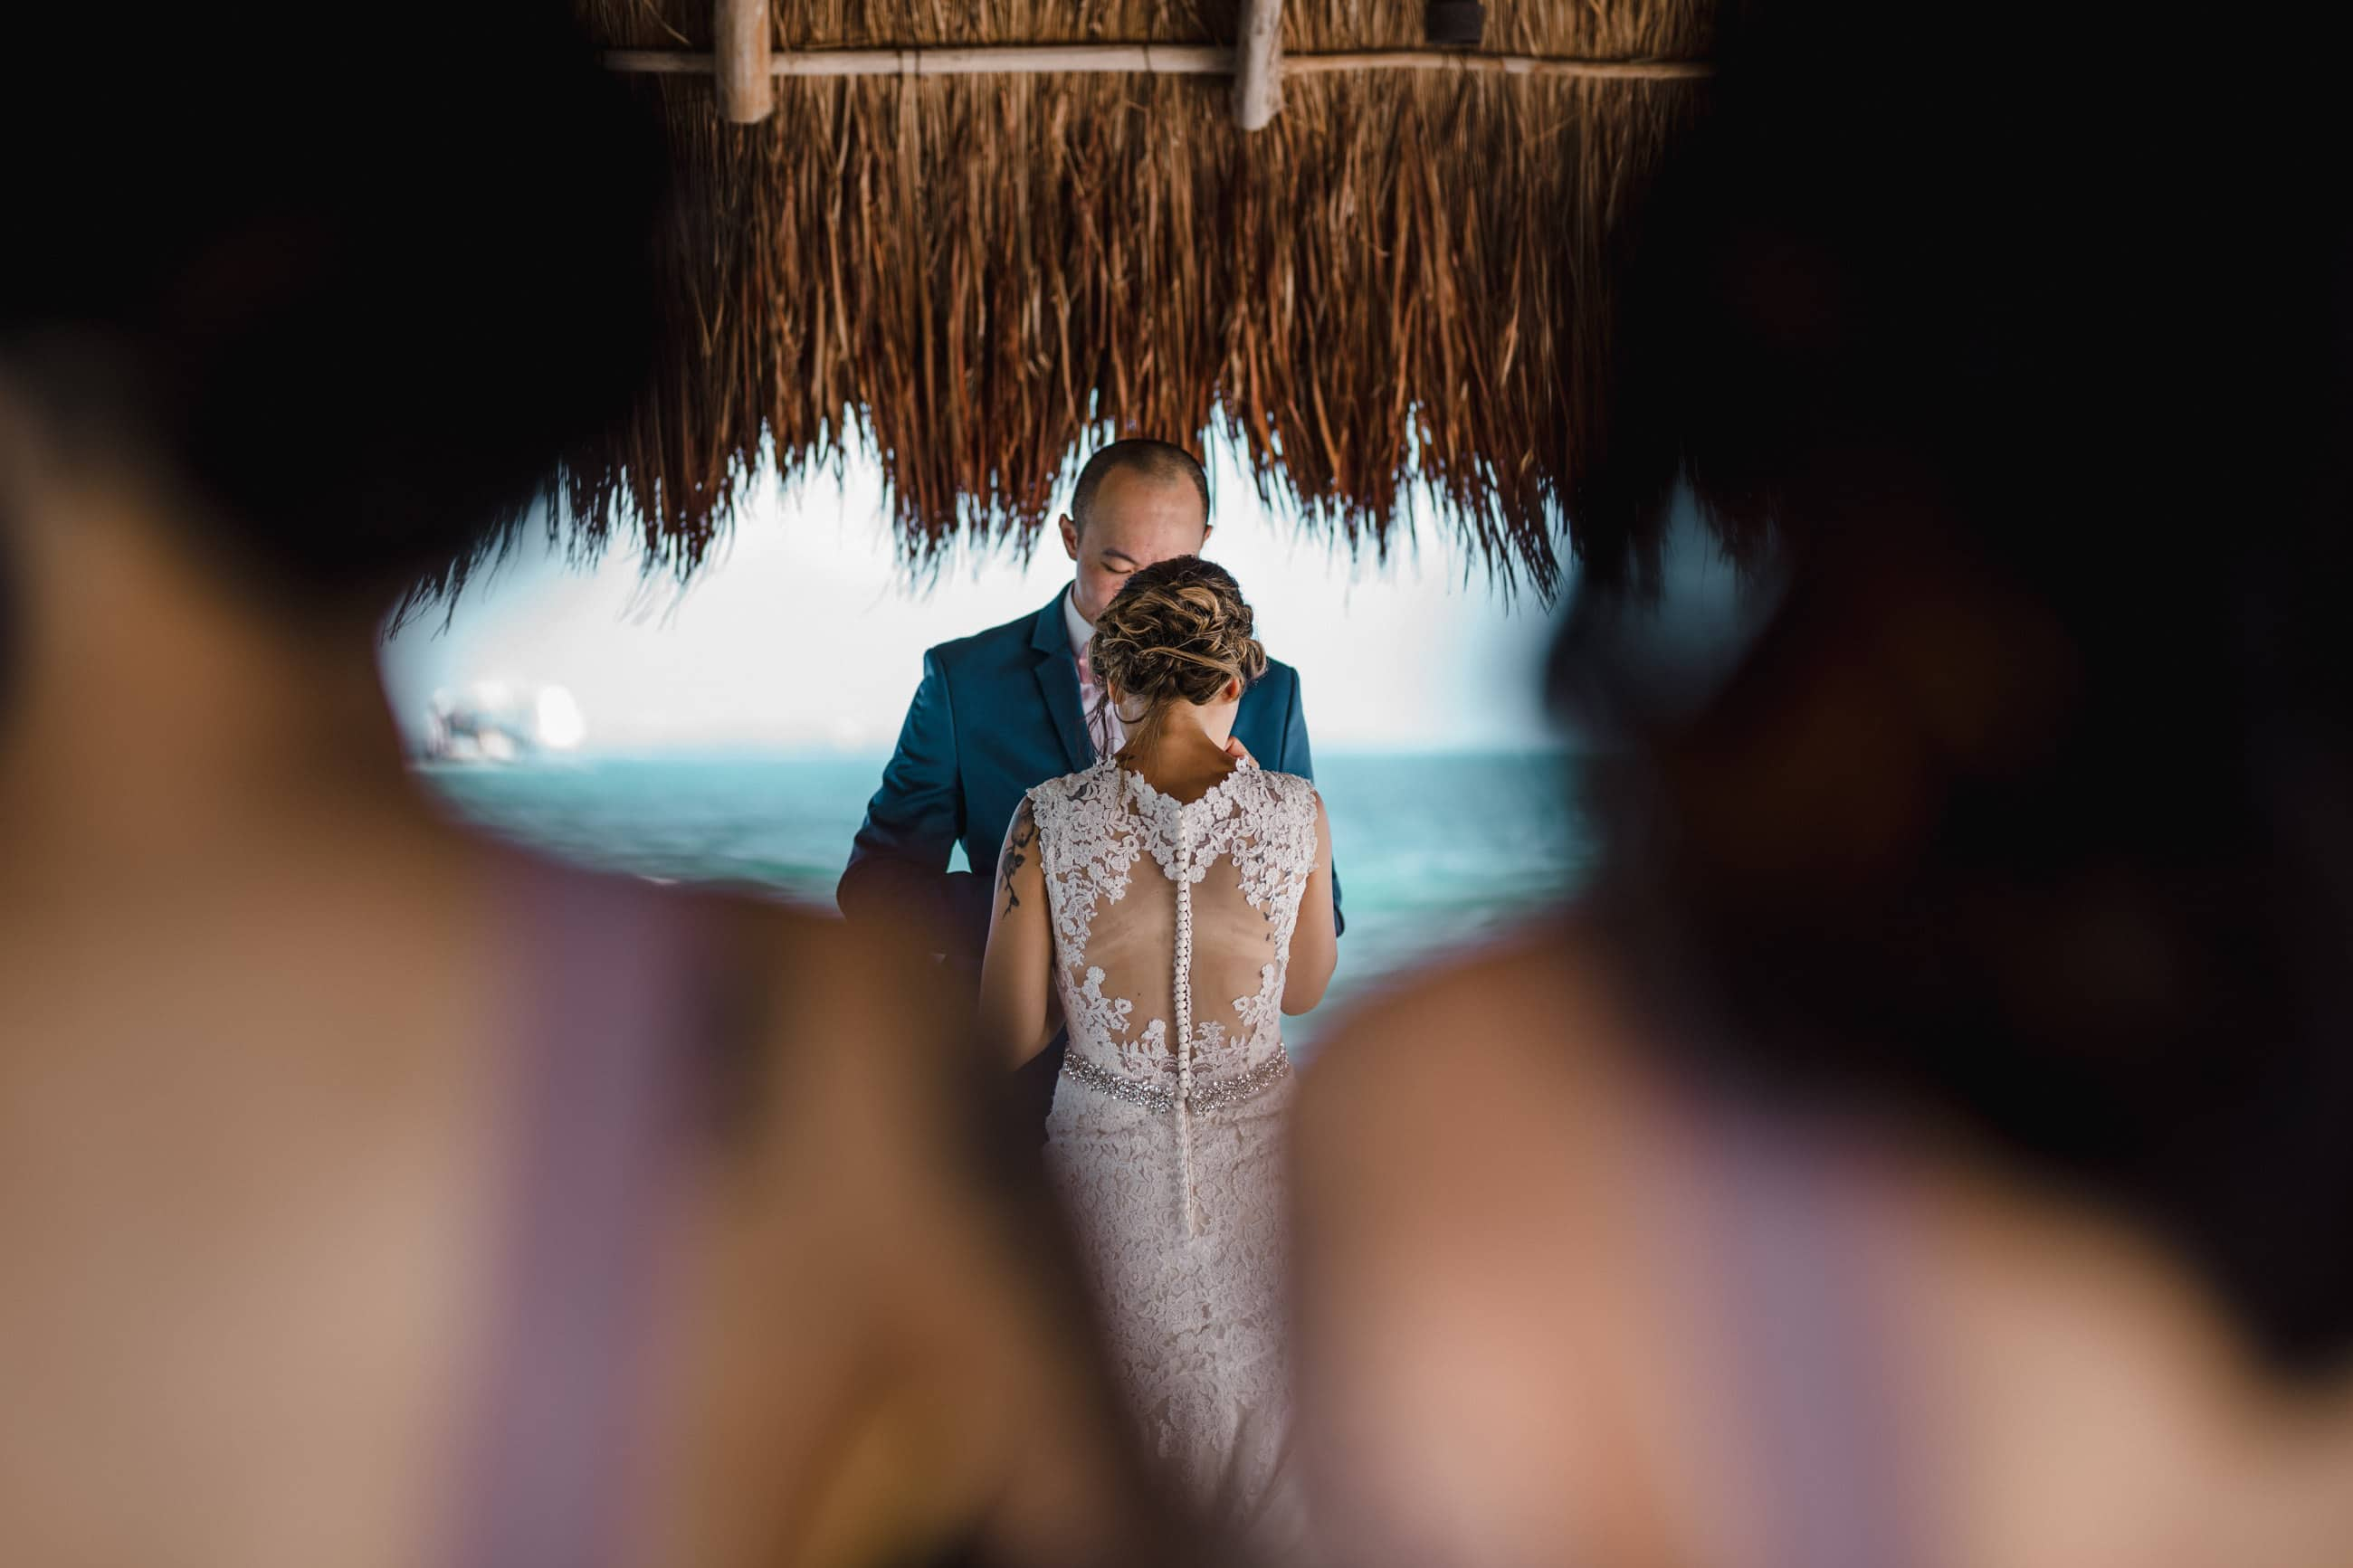 vows at Cancun wedding